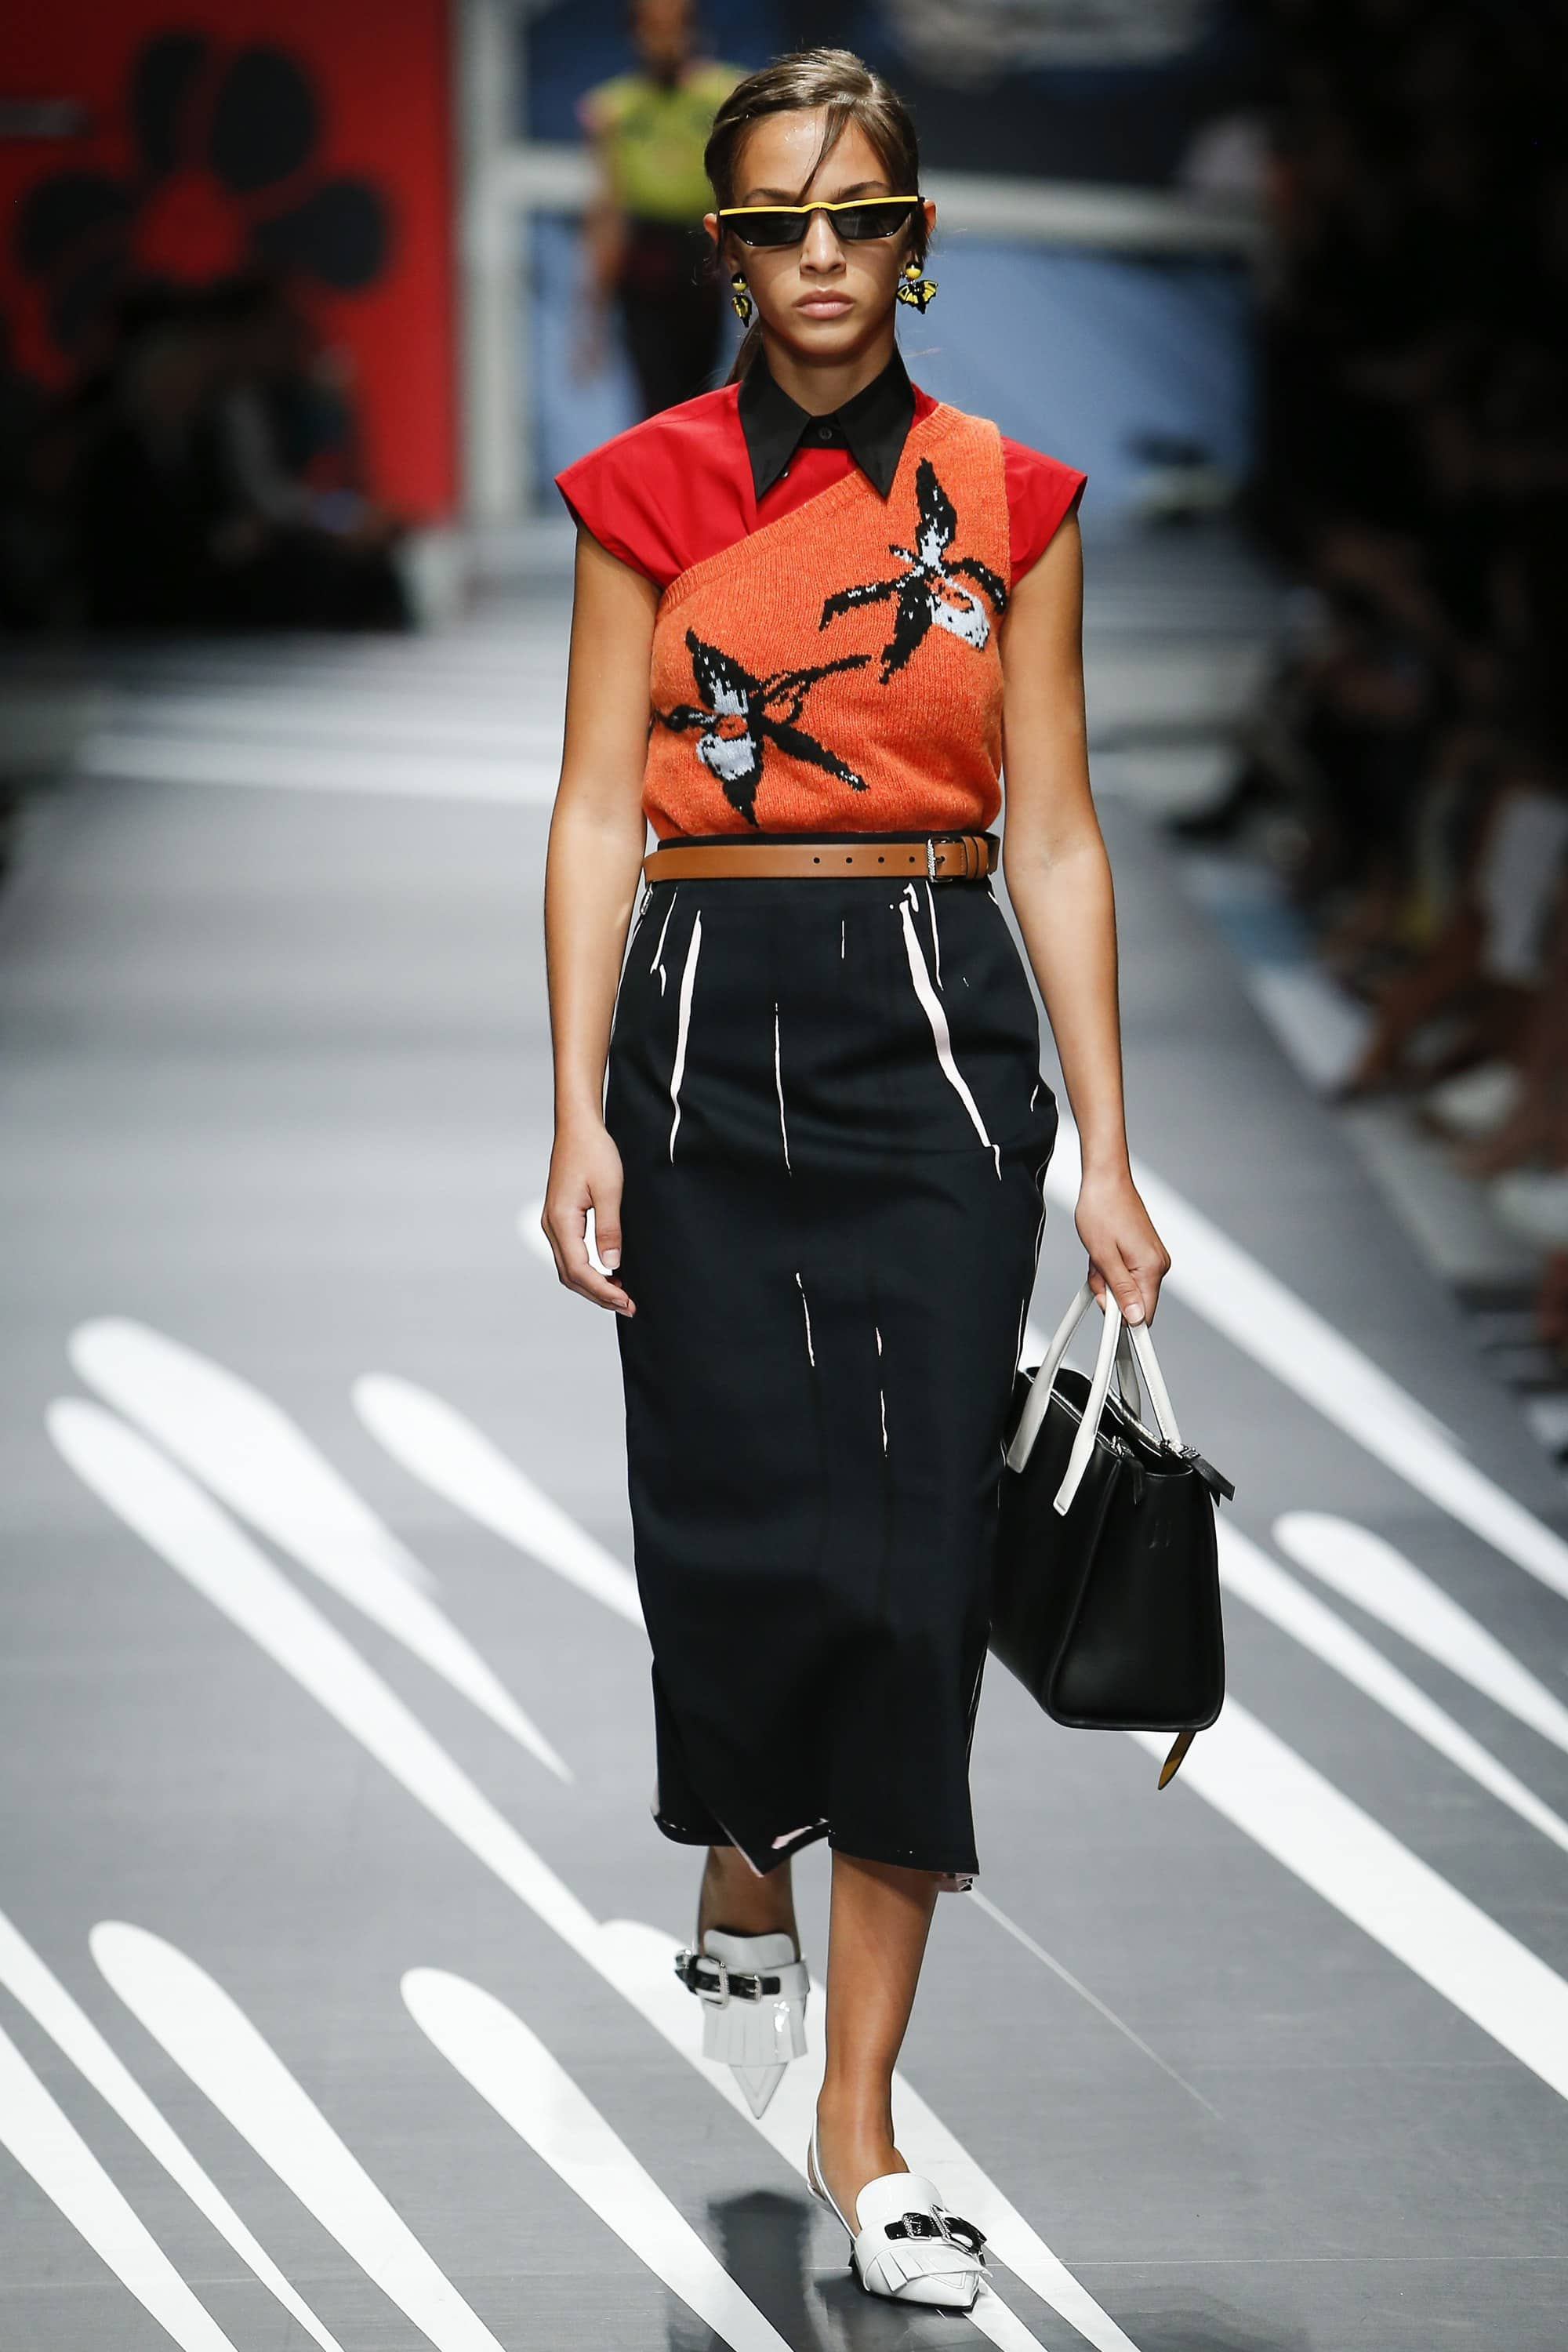 Outfit, Fashion, Fashion Show, Catwalk, Model, Model Life, Runway, Dress, Look, OOTD, Fashion Week, Trend Report, Trends, Trendy, SS18, Spring Summer 2018, NYFW, New York, New York Fashion Week, Runway Walk, Prada, Pencil Skir